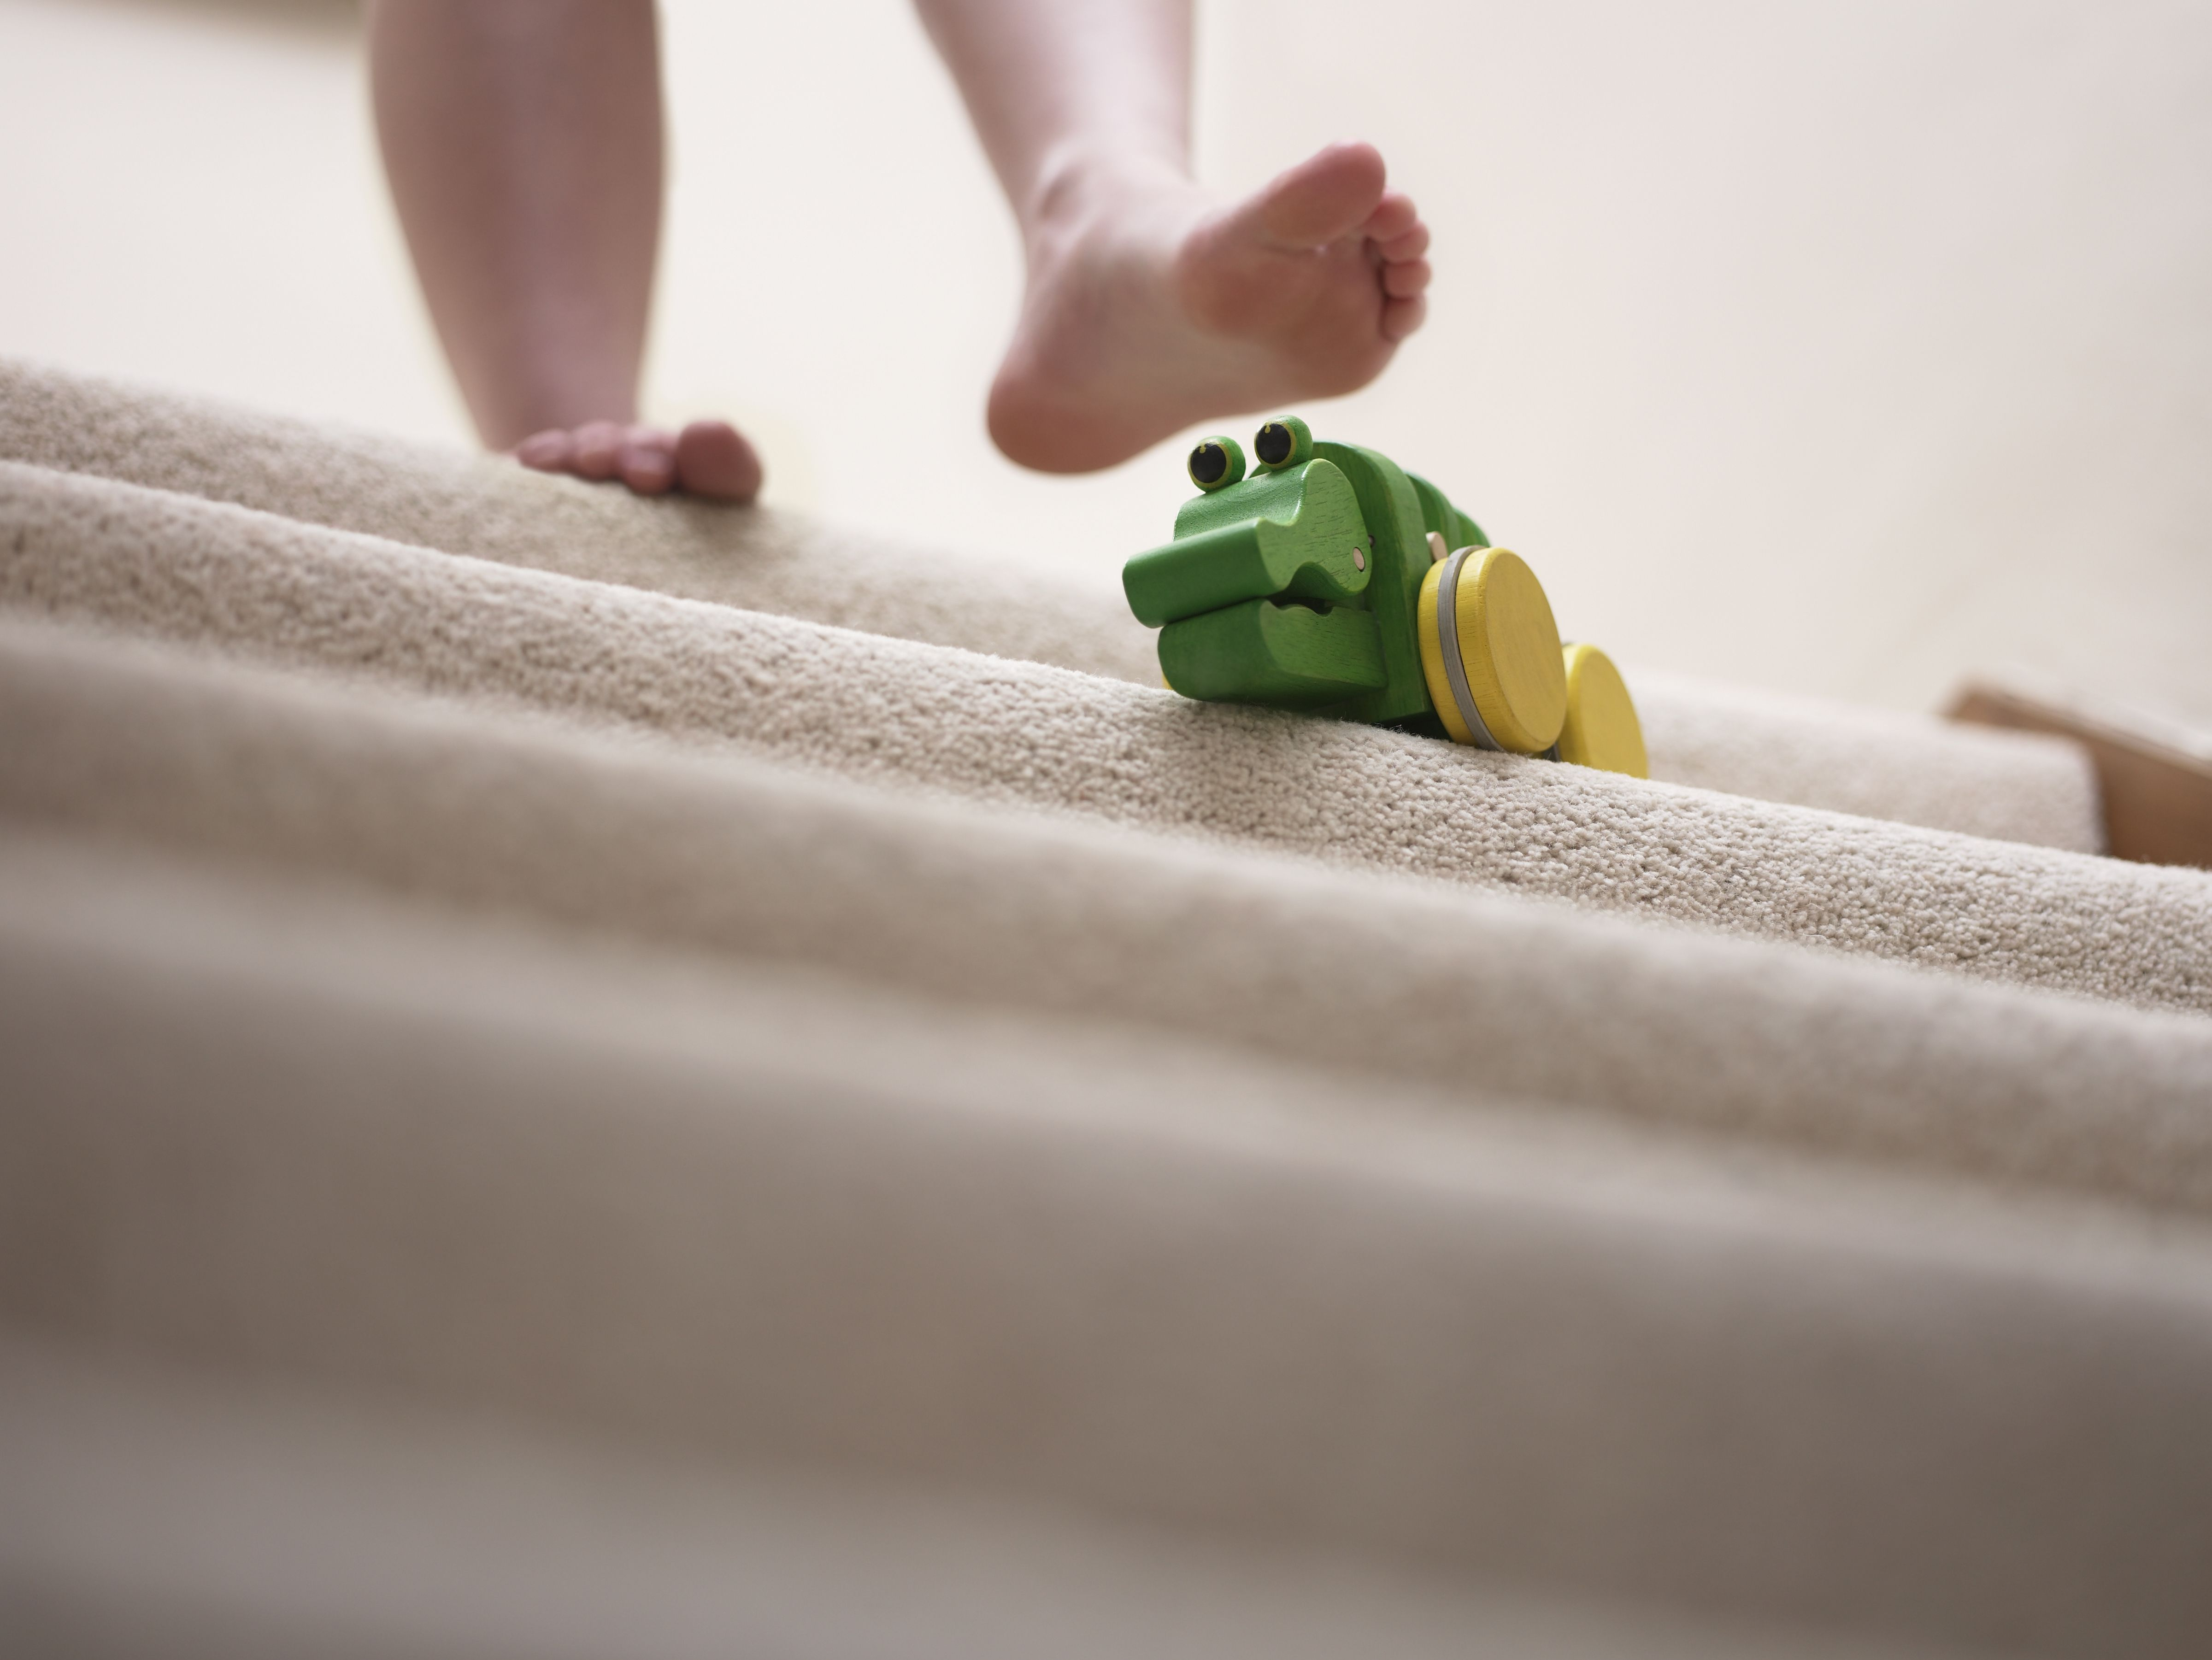 Woman about to slip on toy left on staircase